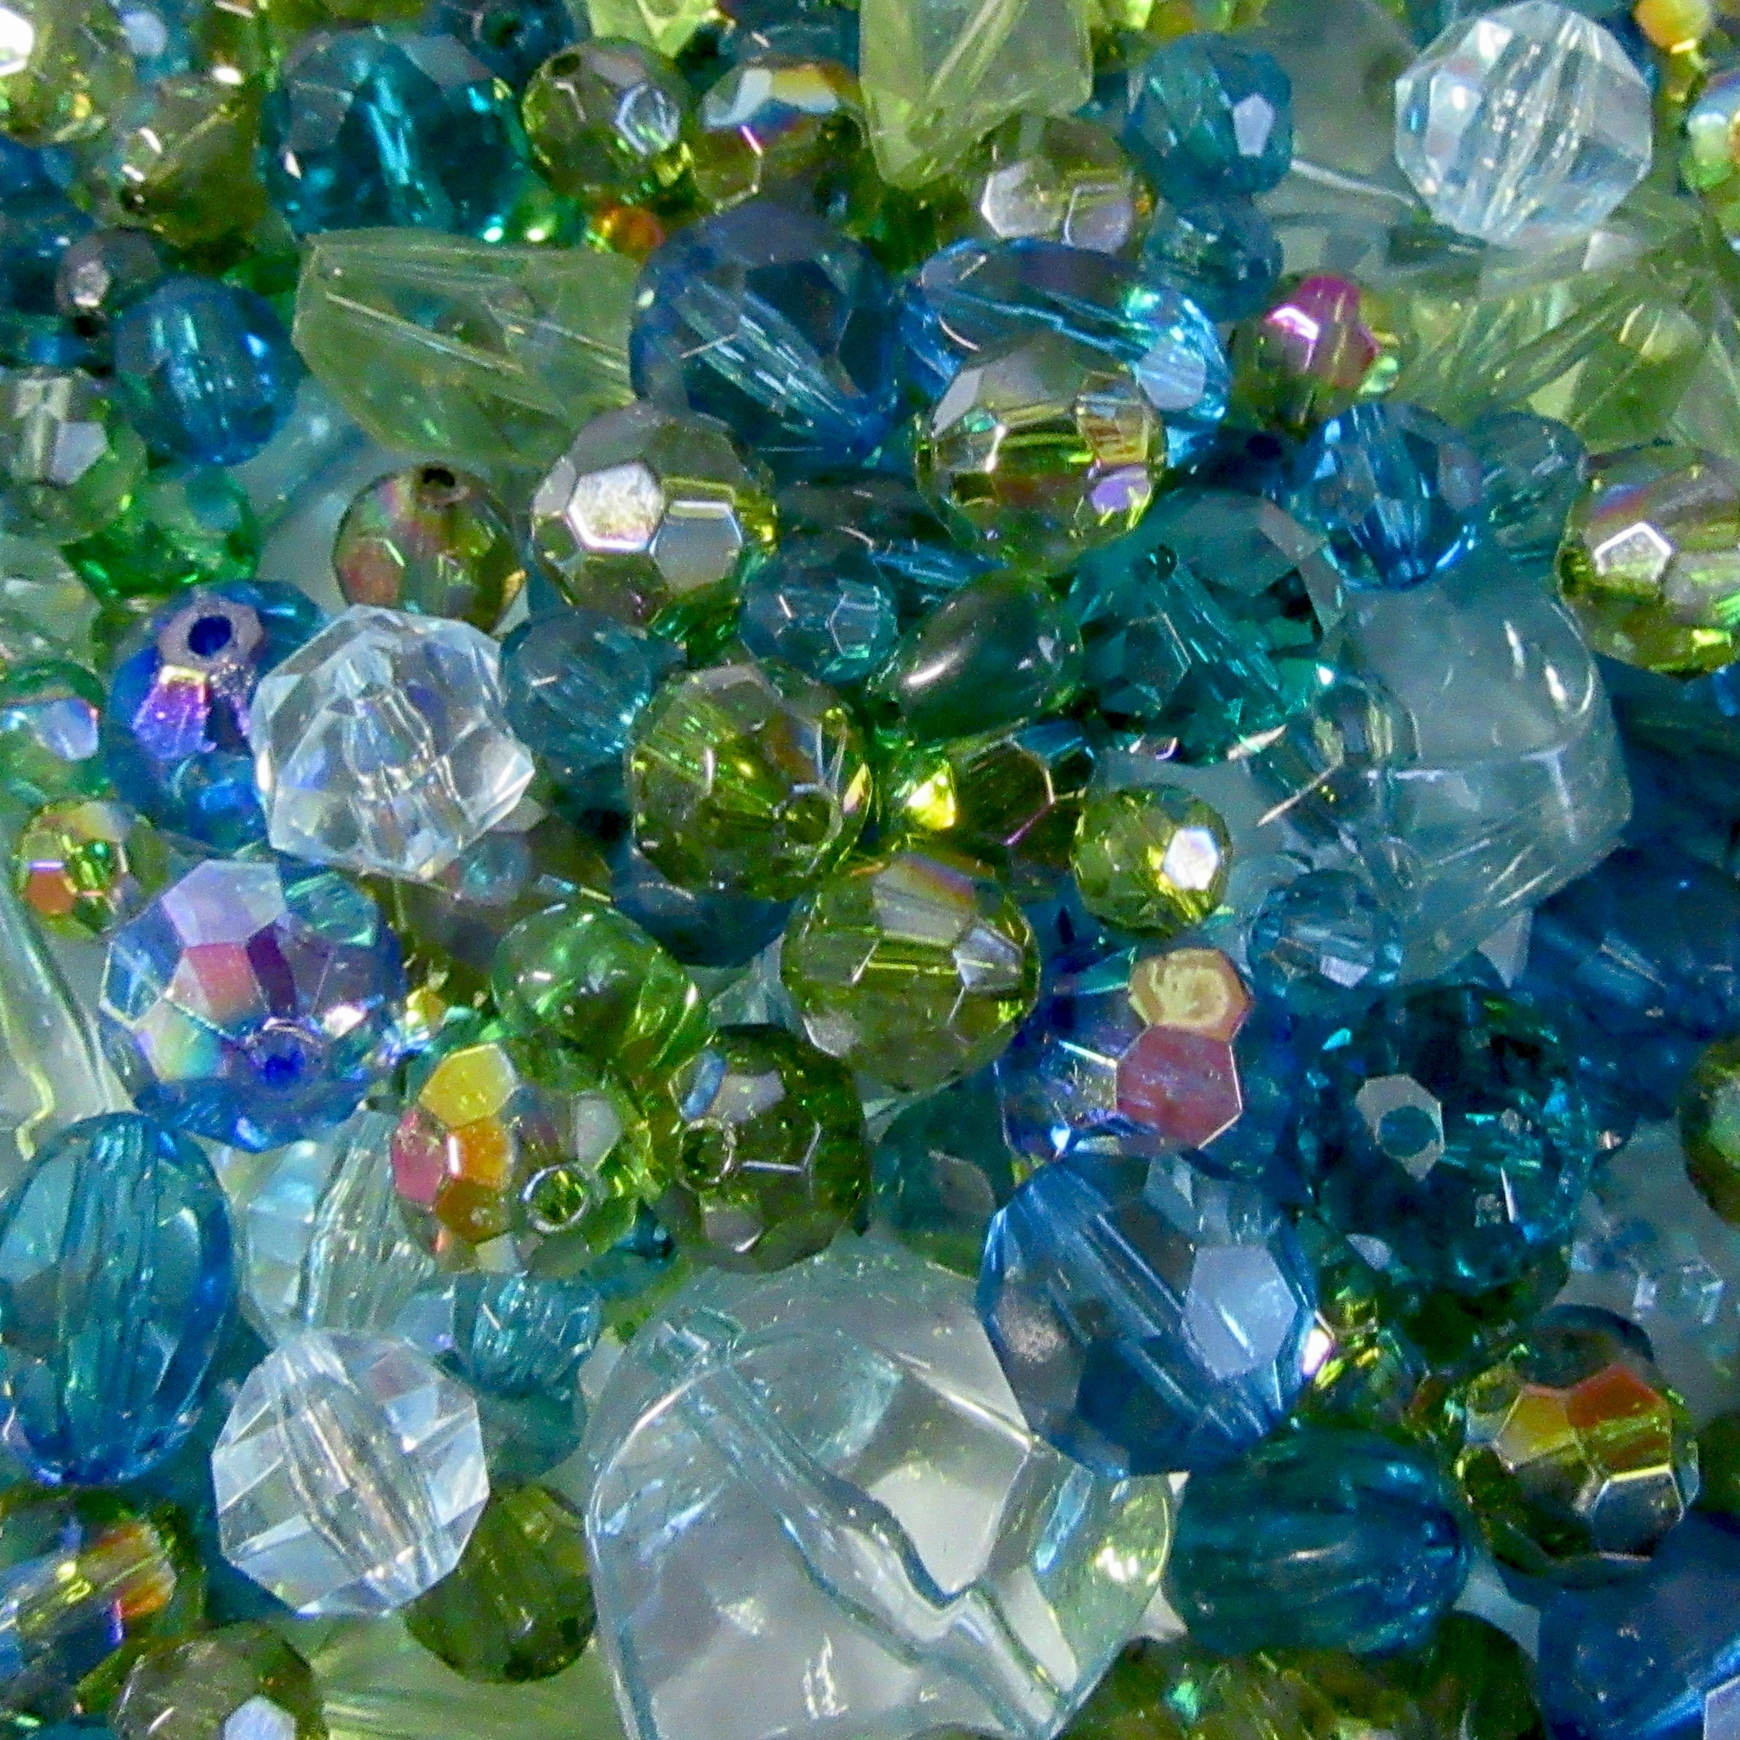 vintage beads,  green, emerald, blues, ab coats, B'sue Boutiques, mixed beads, beads mix, assorted beads, vintage acrylic beads, acrylic beads, designer beads, green beads, emerald green beads, jewelry designer, beaded jewelry, beading, bag of mixed beads